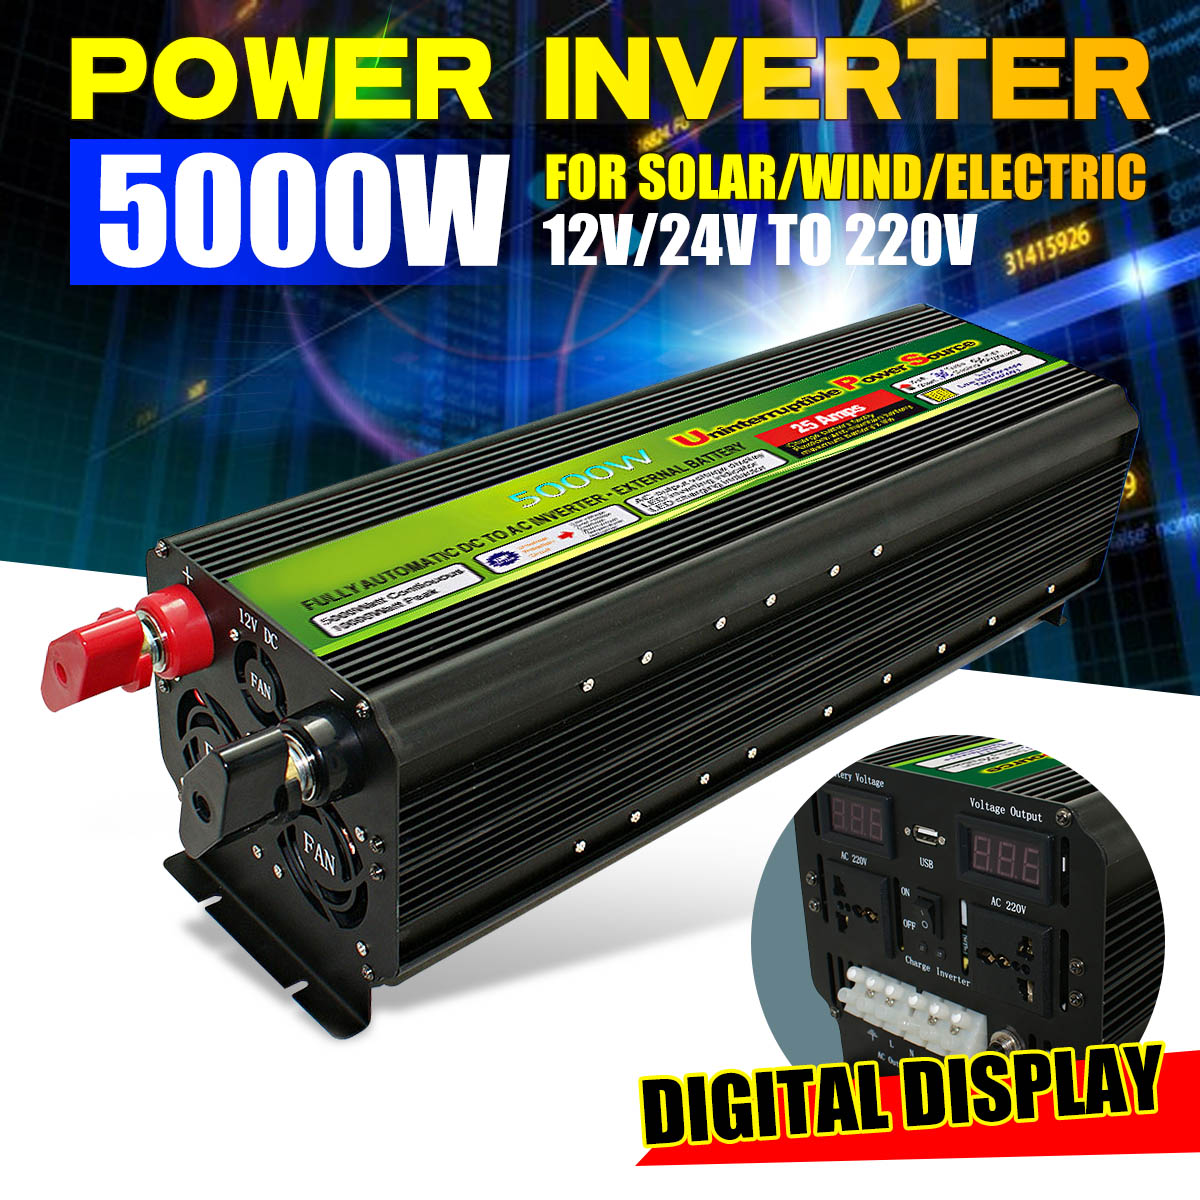 5000Watt 10000W (Peak) 12/24V Zu <font><b>220V</b></font> 60Hz UPS Power <font><b>Inverter</b></font> Solar/Wind Aufladbare LCD display spannung Auto power <font><b>Inverter</b></font> image